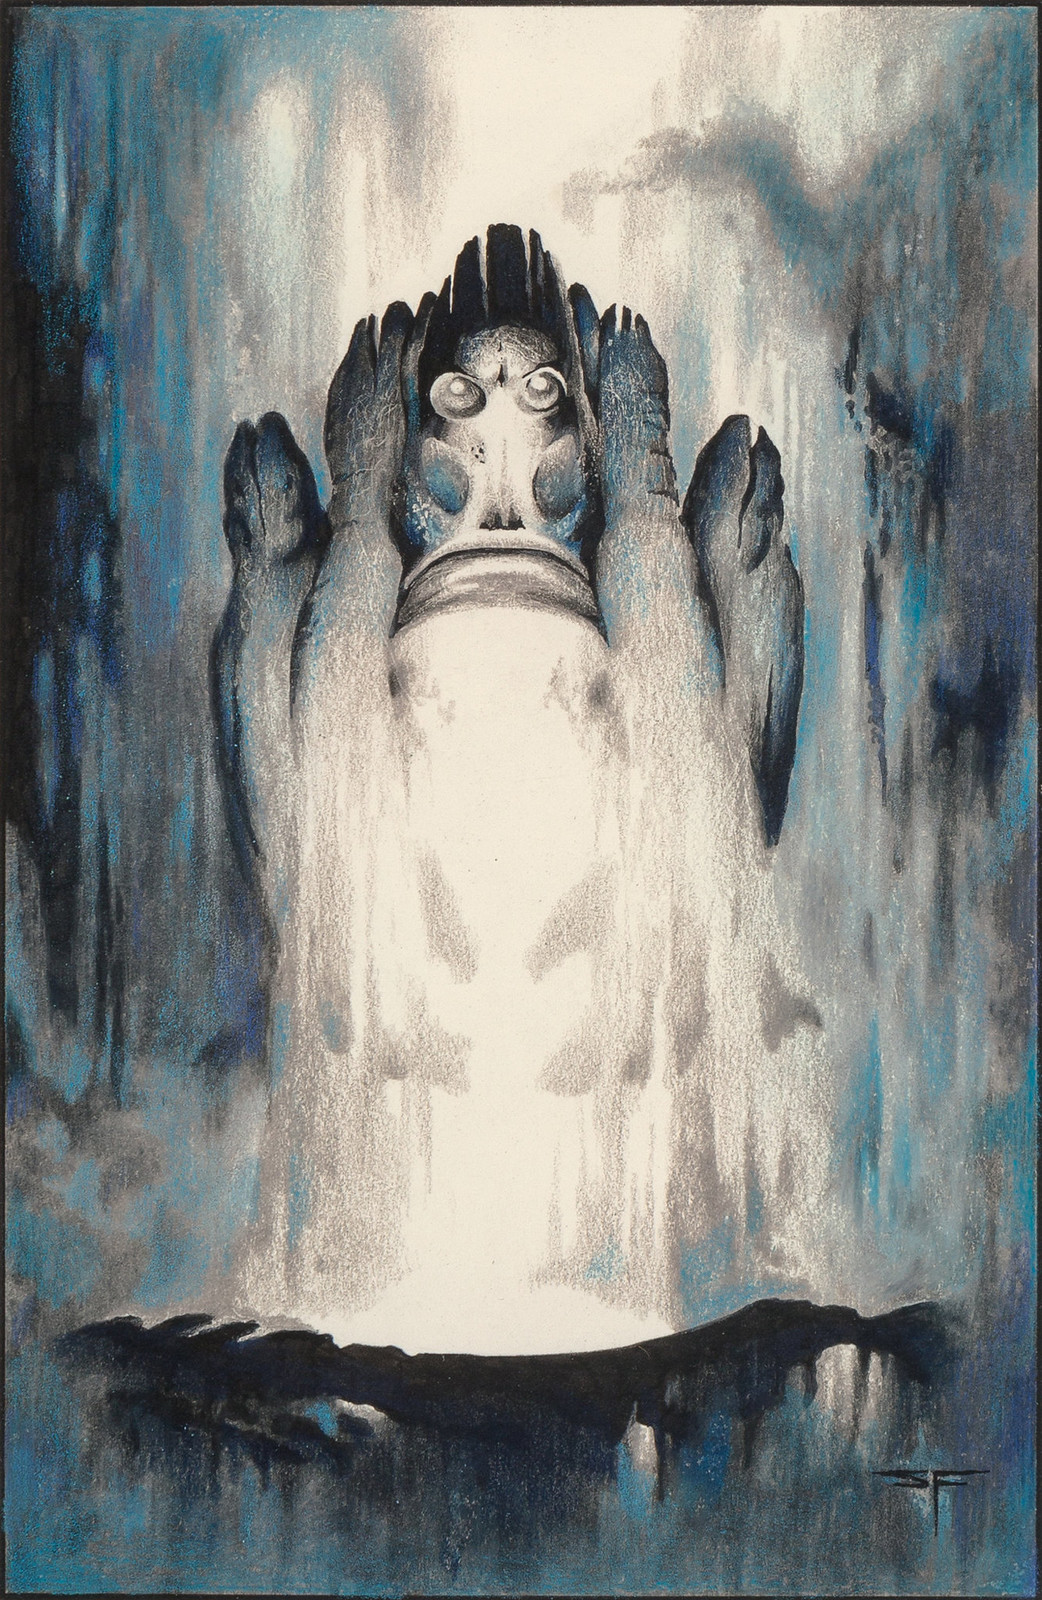 Stephen Fabian - The Dream of X - The North West Watcher, 1977